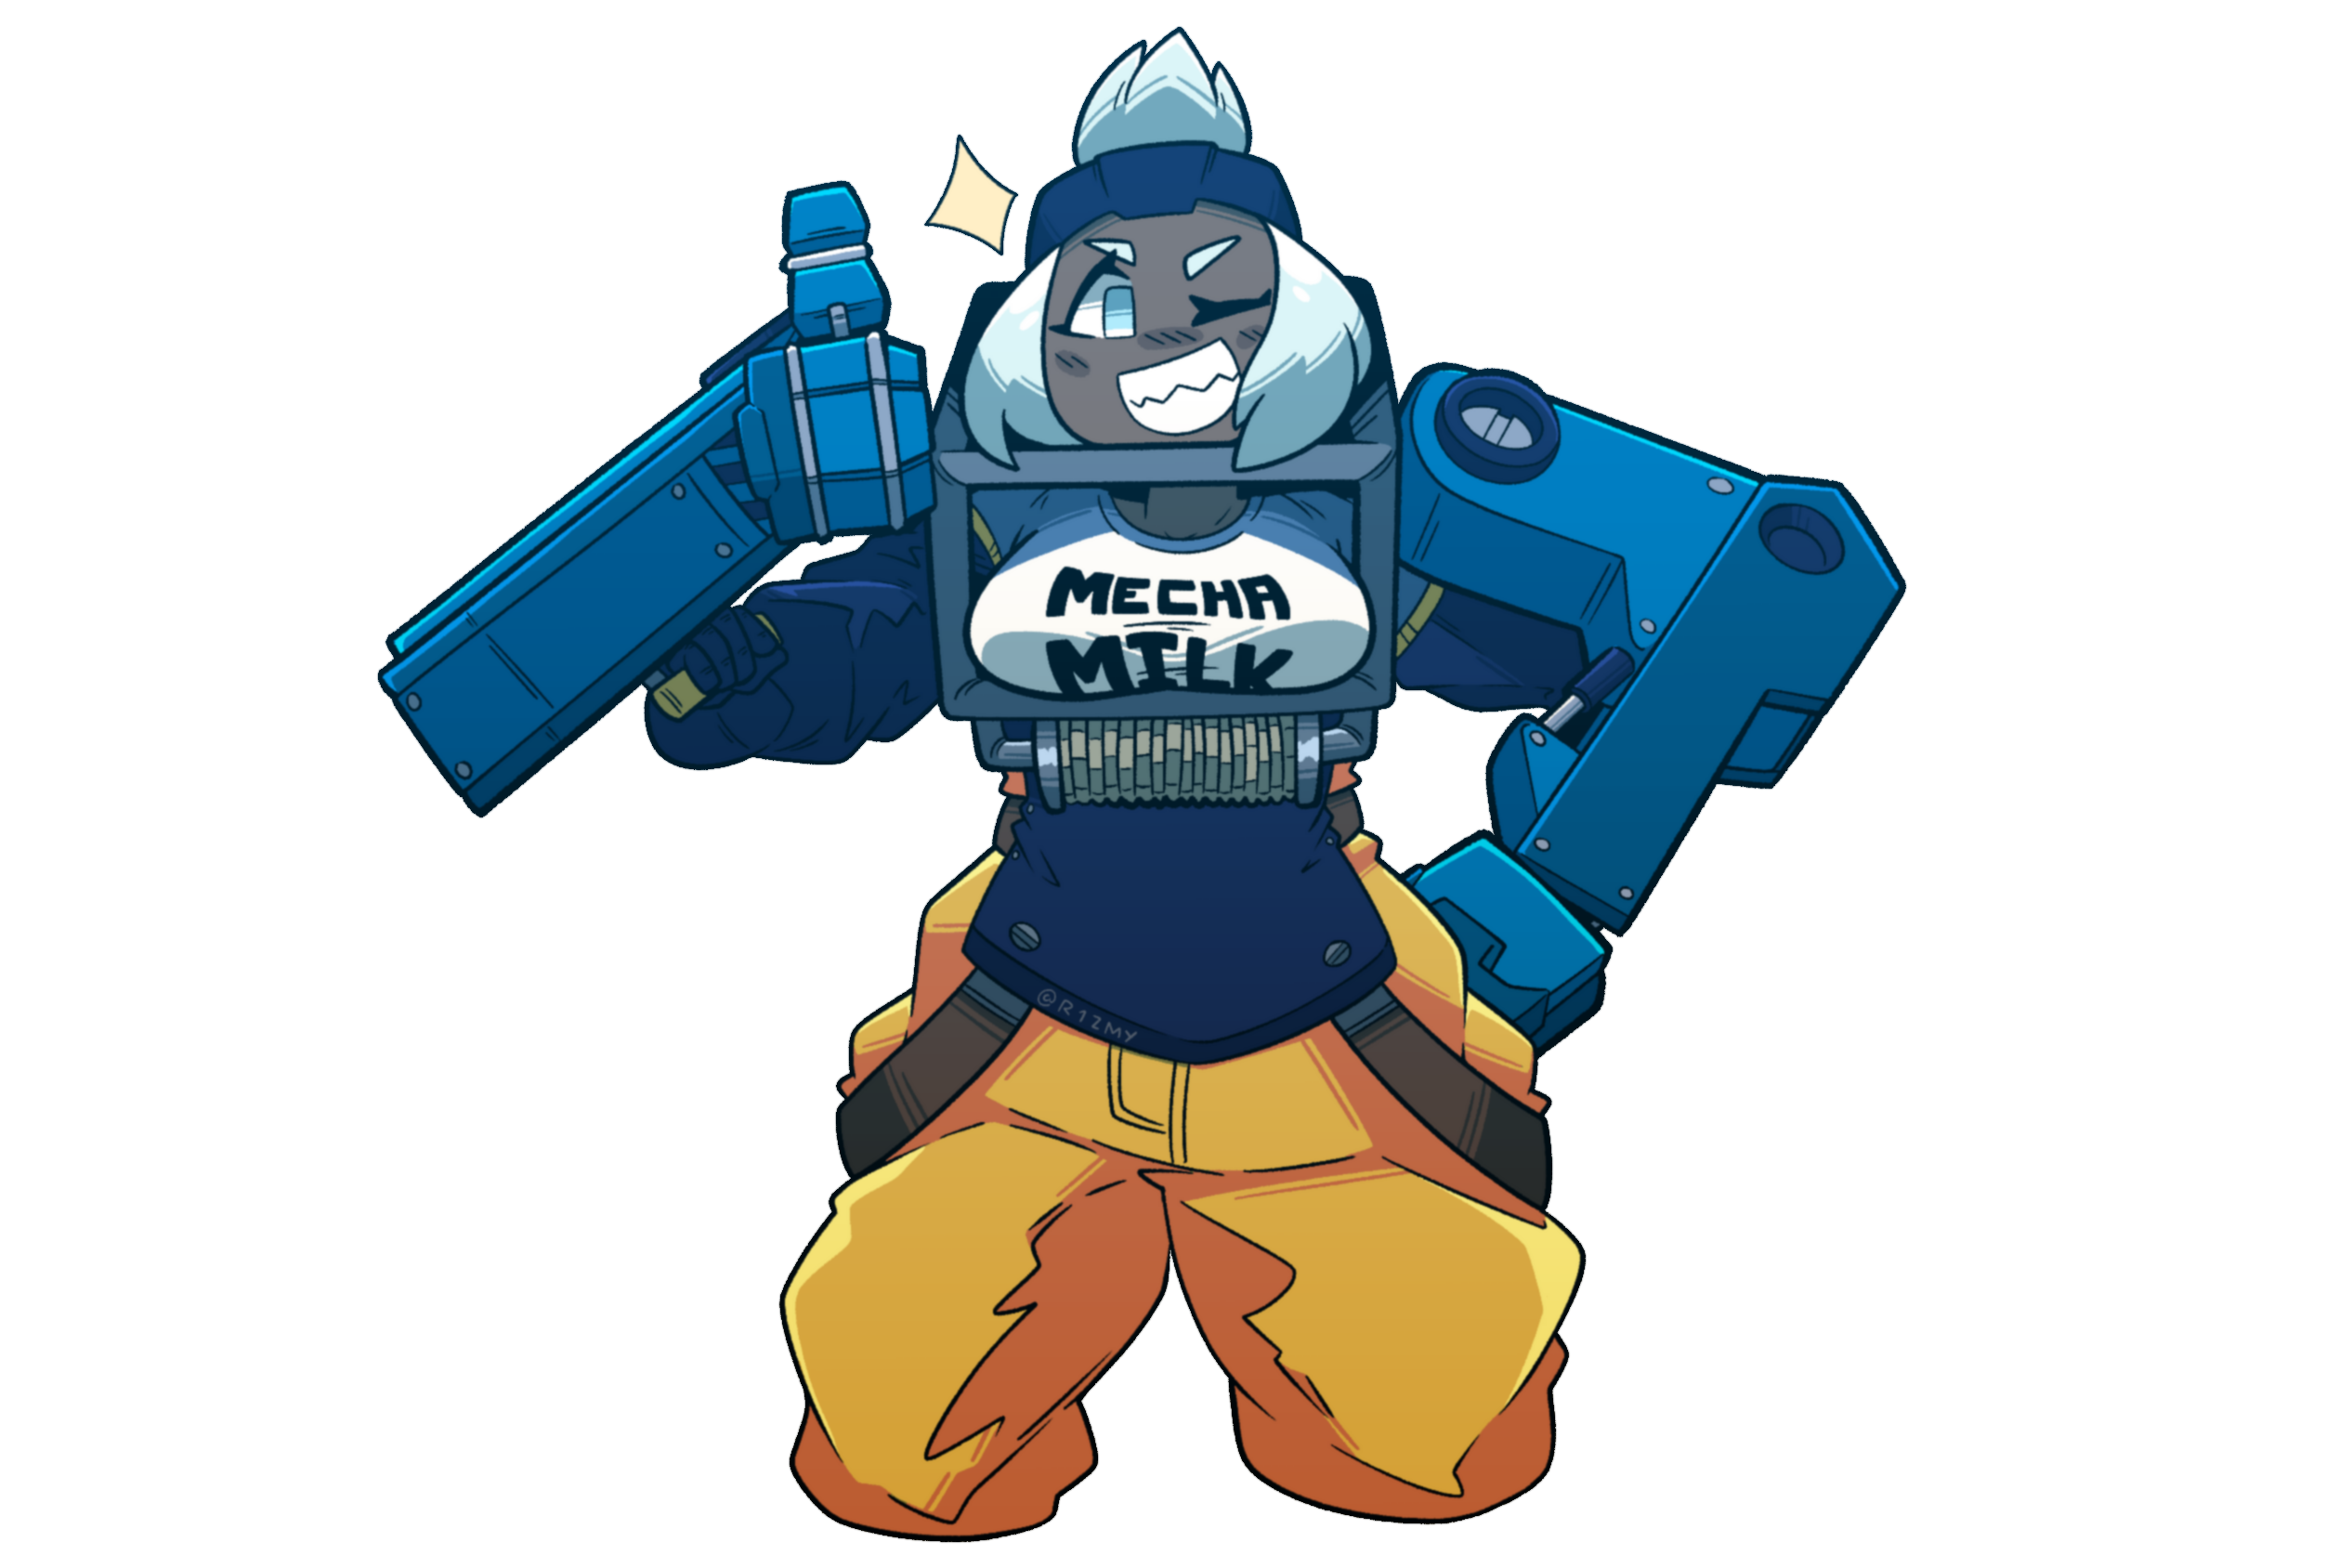 Loader with a funny shirt